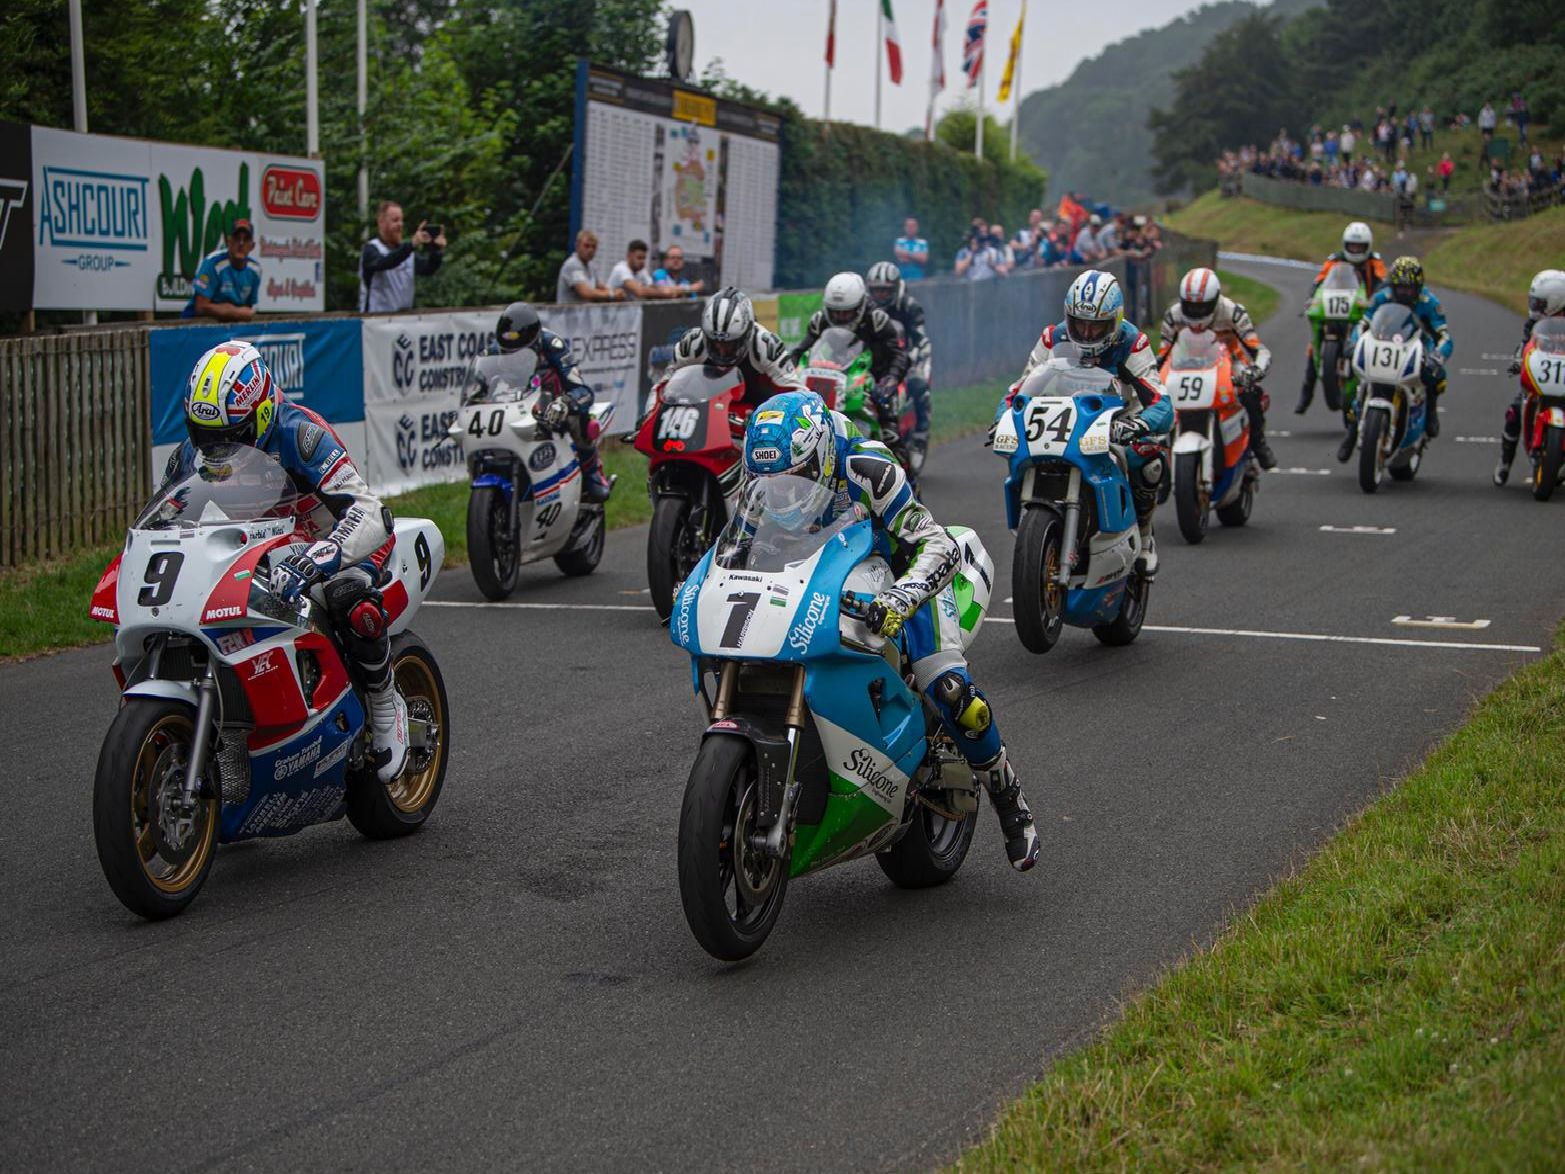 Racing returns to Oliver's Mount / Picture by John Margetts